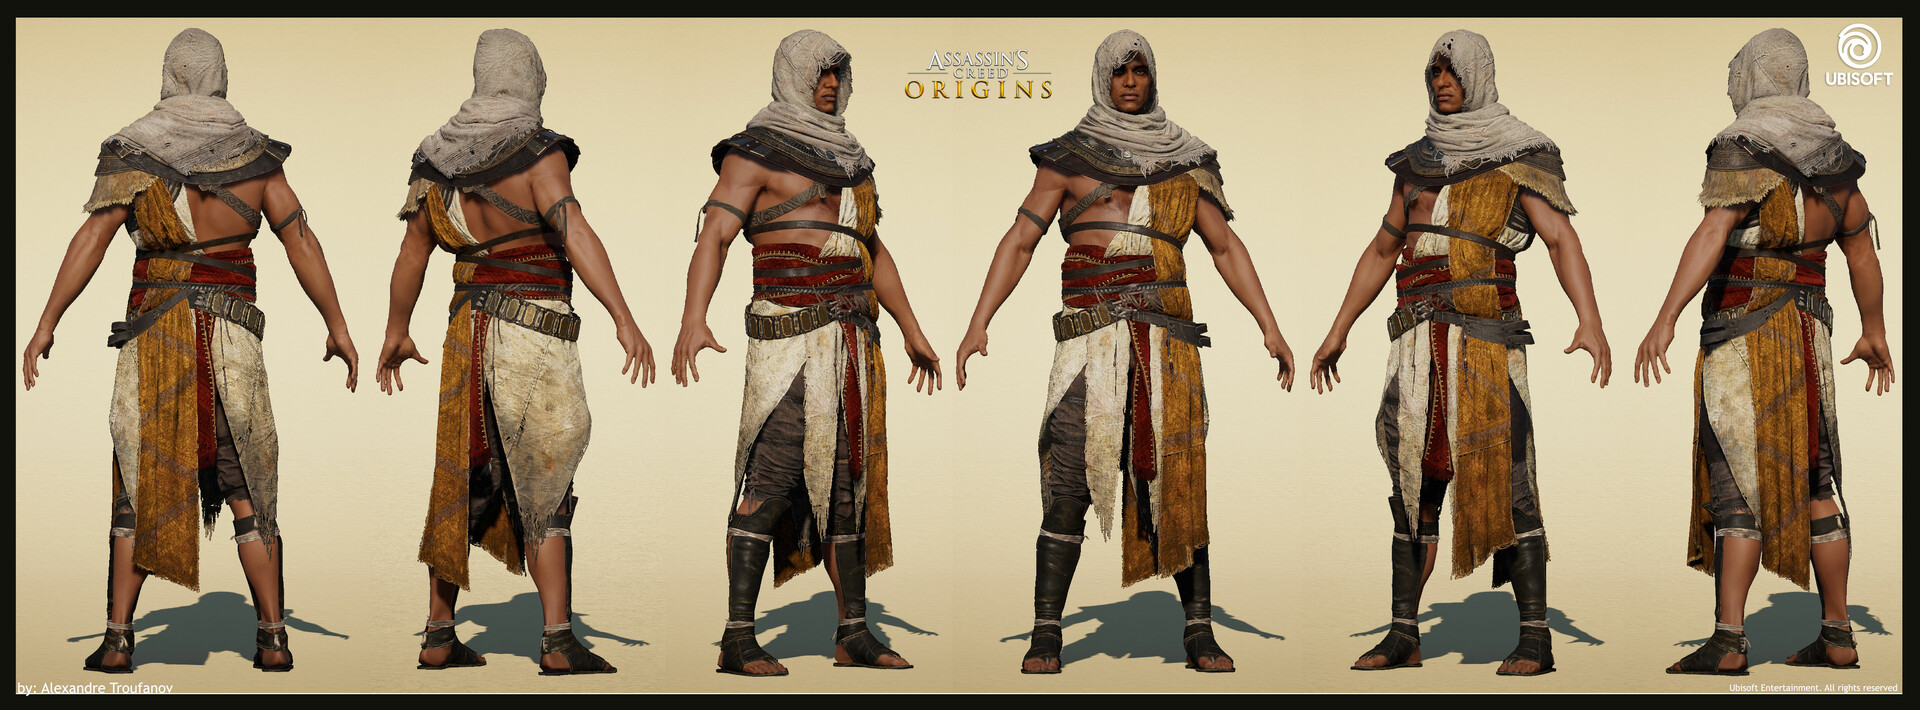 assassins creed origins bayek outfits